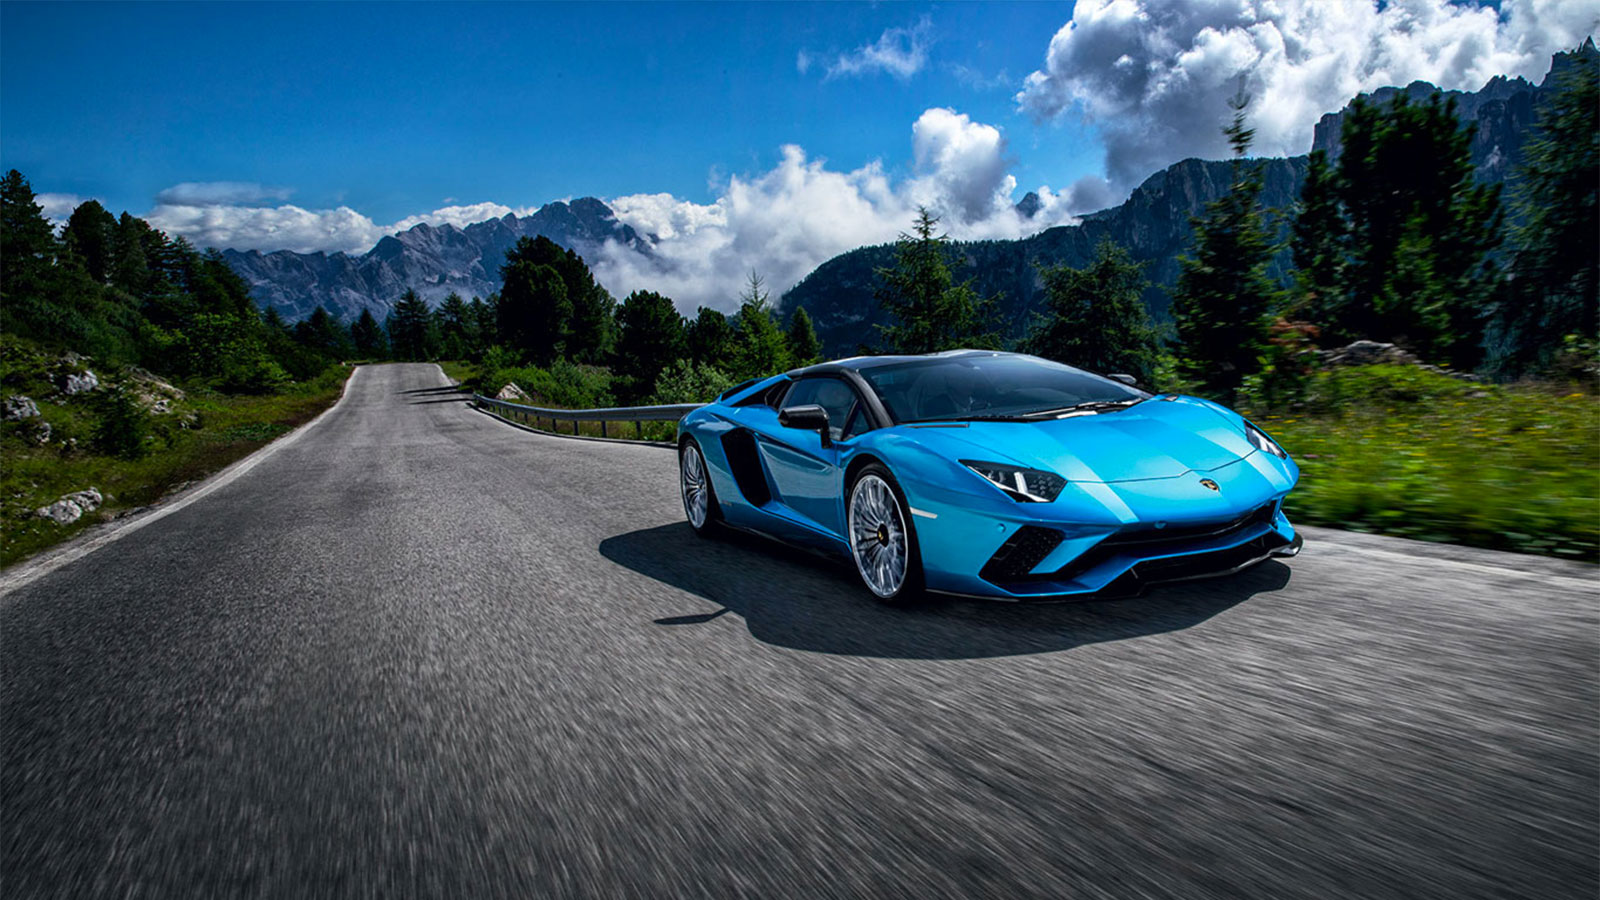 Lamborghini Aventador S Roadster - The Open Top Icon image 1